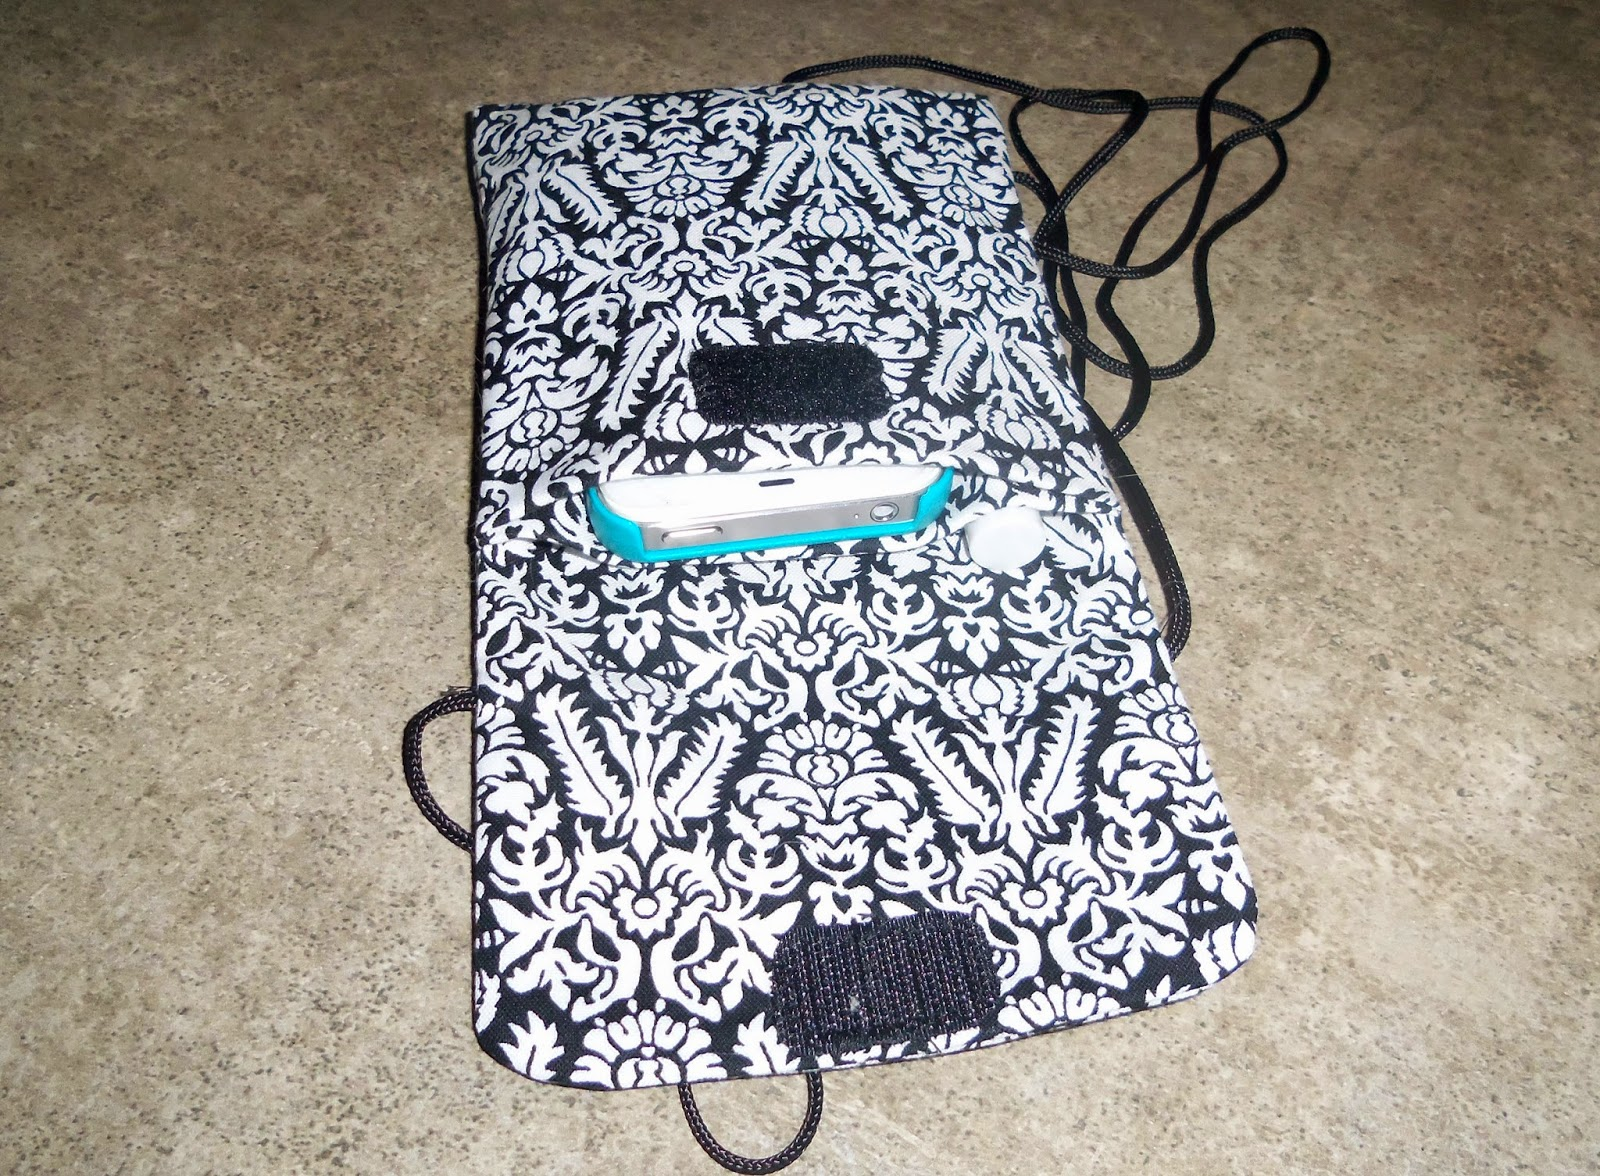 Quiltsmart Cell Phone bag with phone, lipgloss and cards